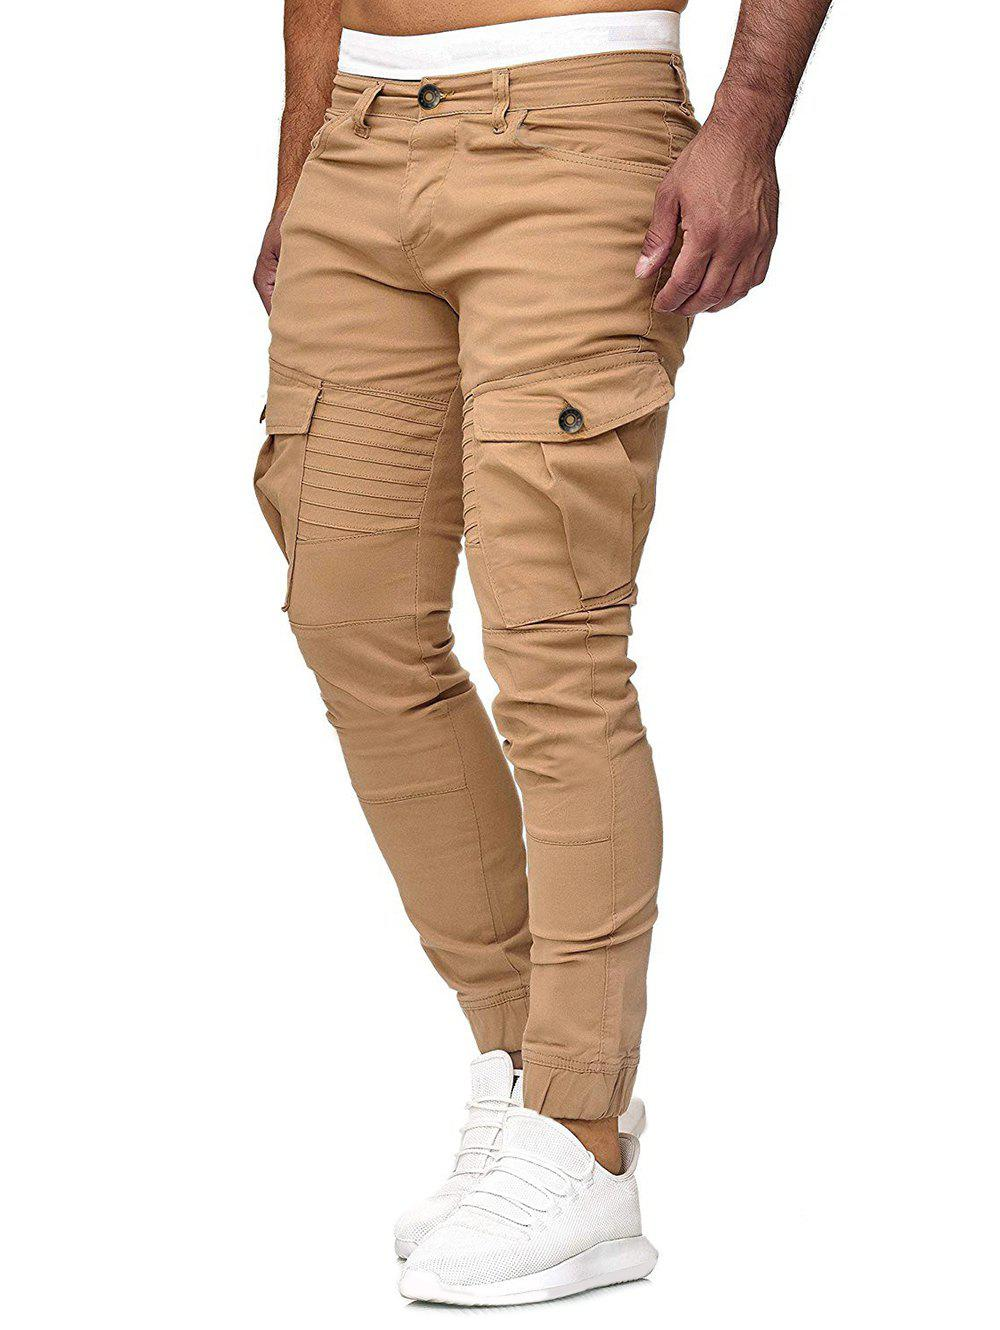 Solid Color Pleated Flap Pocket Casual Jogger Pants - KHAKI XL